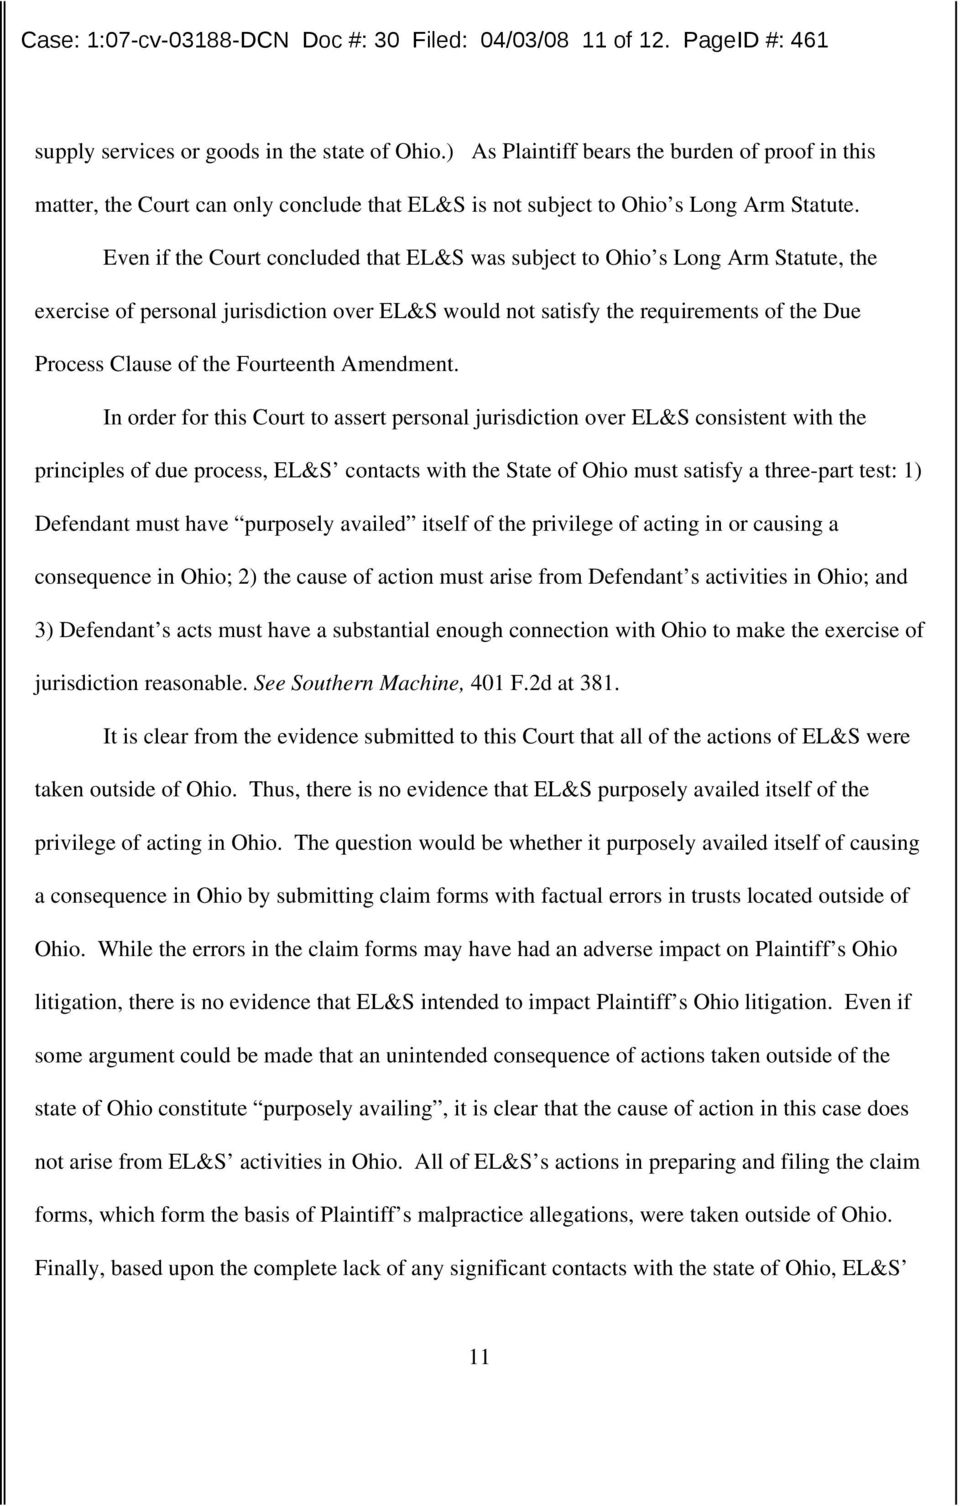 Even if the Court concluded that EL&S was subject to Ohio s Long Arm Statute, the exercise of personal jurisdiction over EL&S would not satisfy the requirements of the Due Process Clause of the